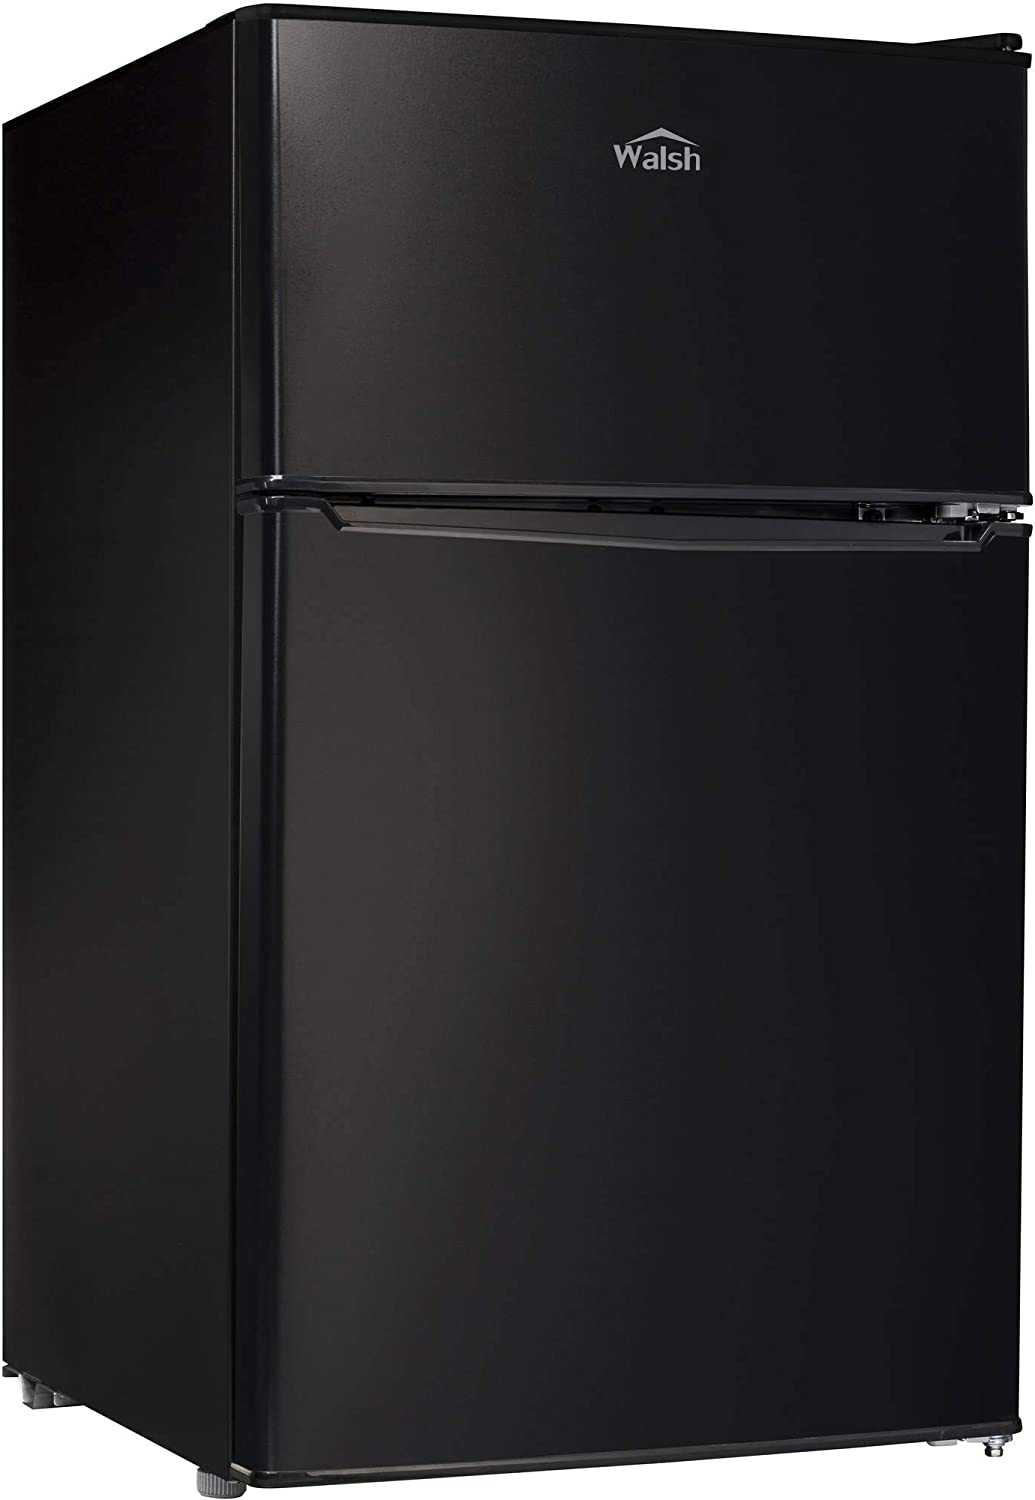 Walsh WSR31TBK Compact Refrigerator 2-Door Fridge Adjustable Mechanical Thermostat with True Freezer, 3.1 Cu.ft Black